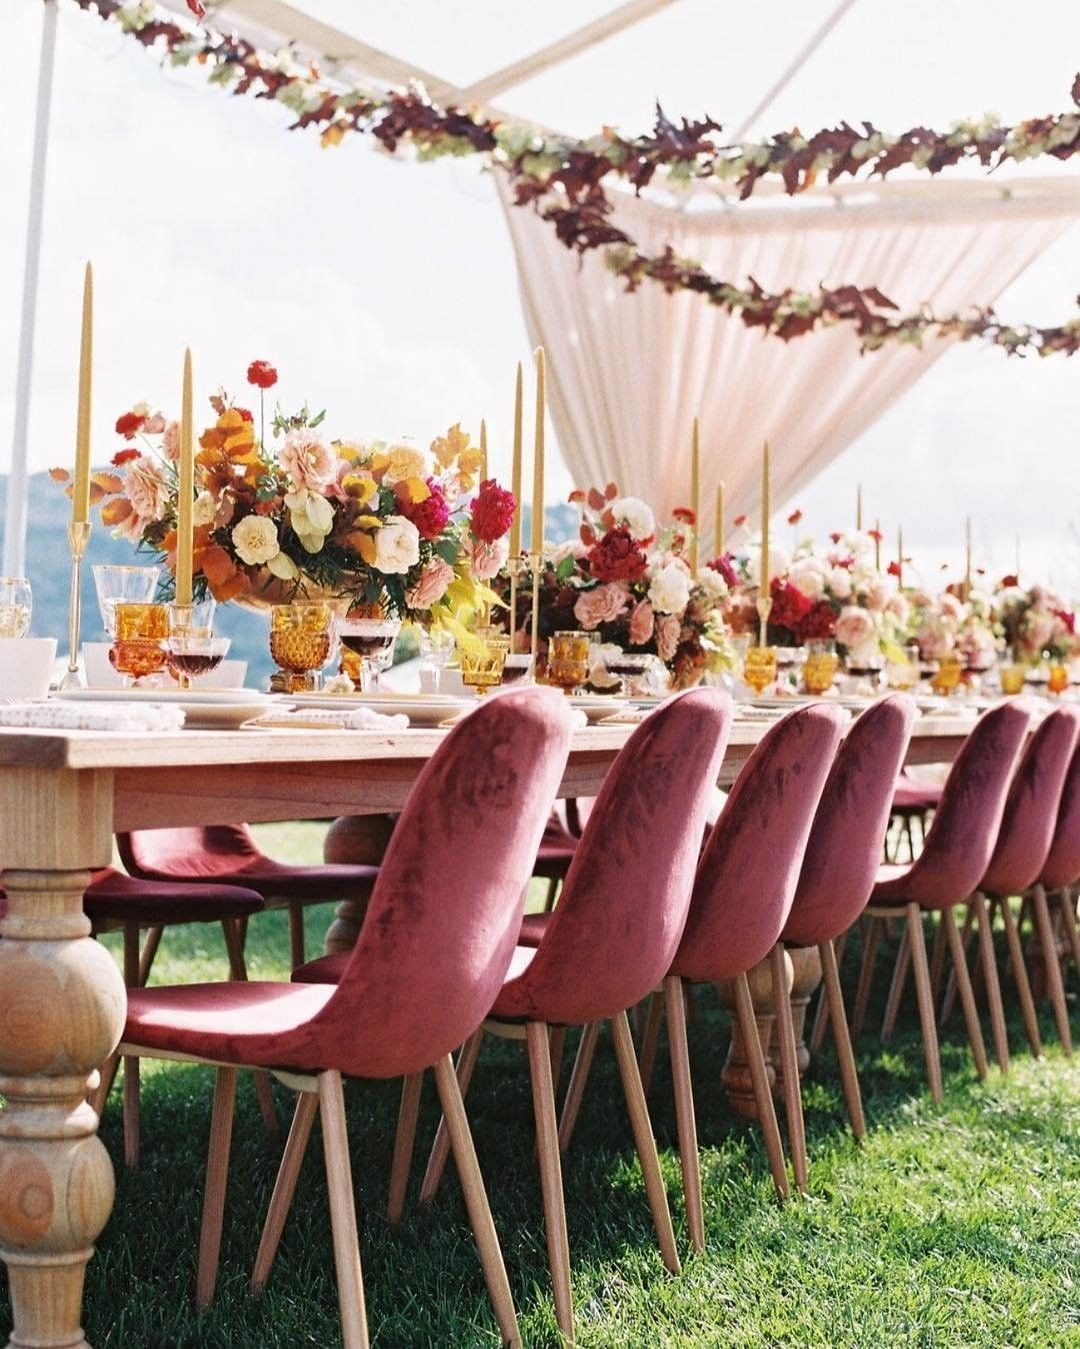 cinnamon rose wedding color trends for 2020 brides to inspire